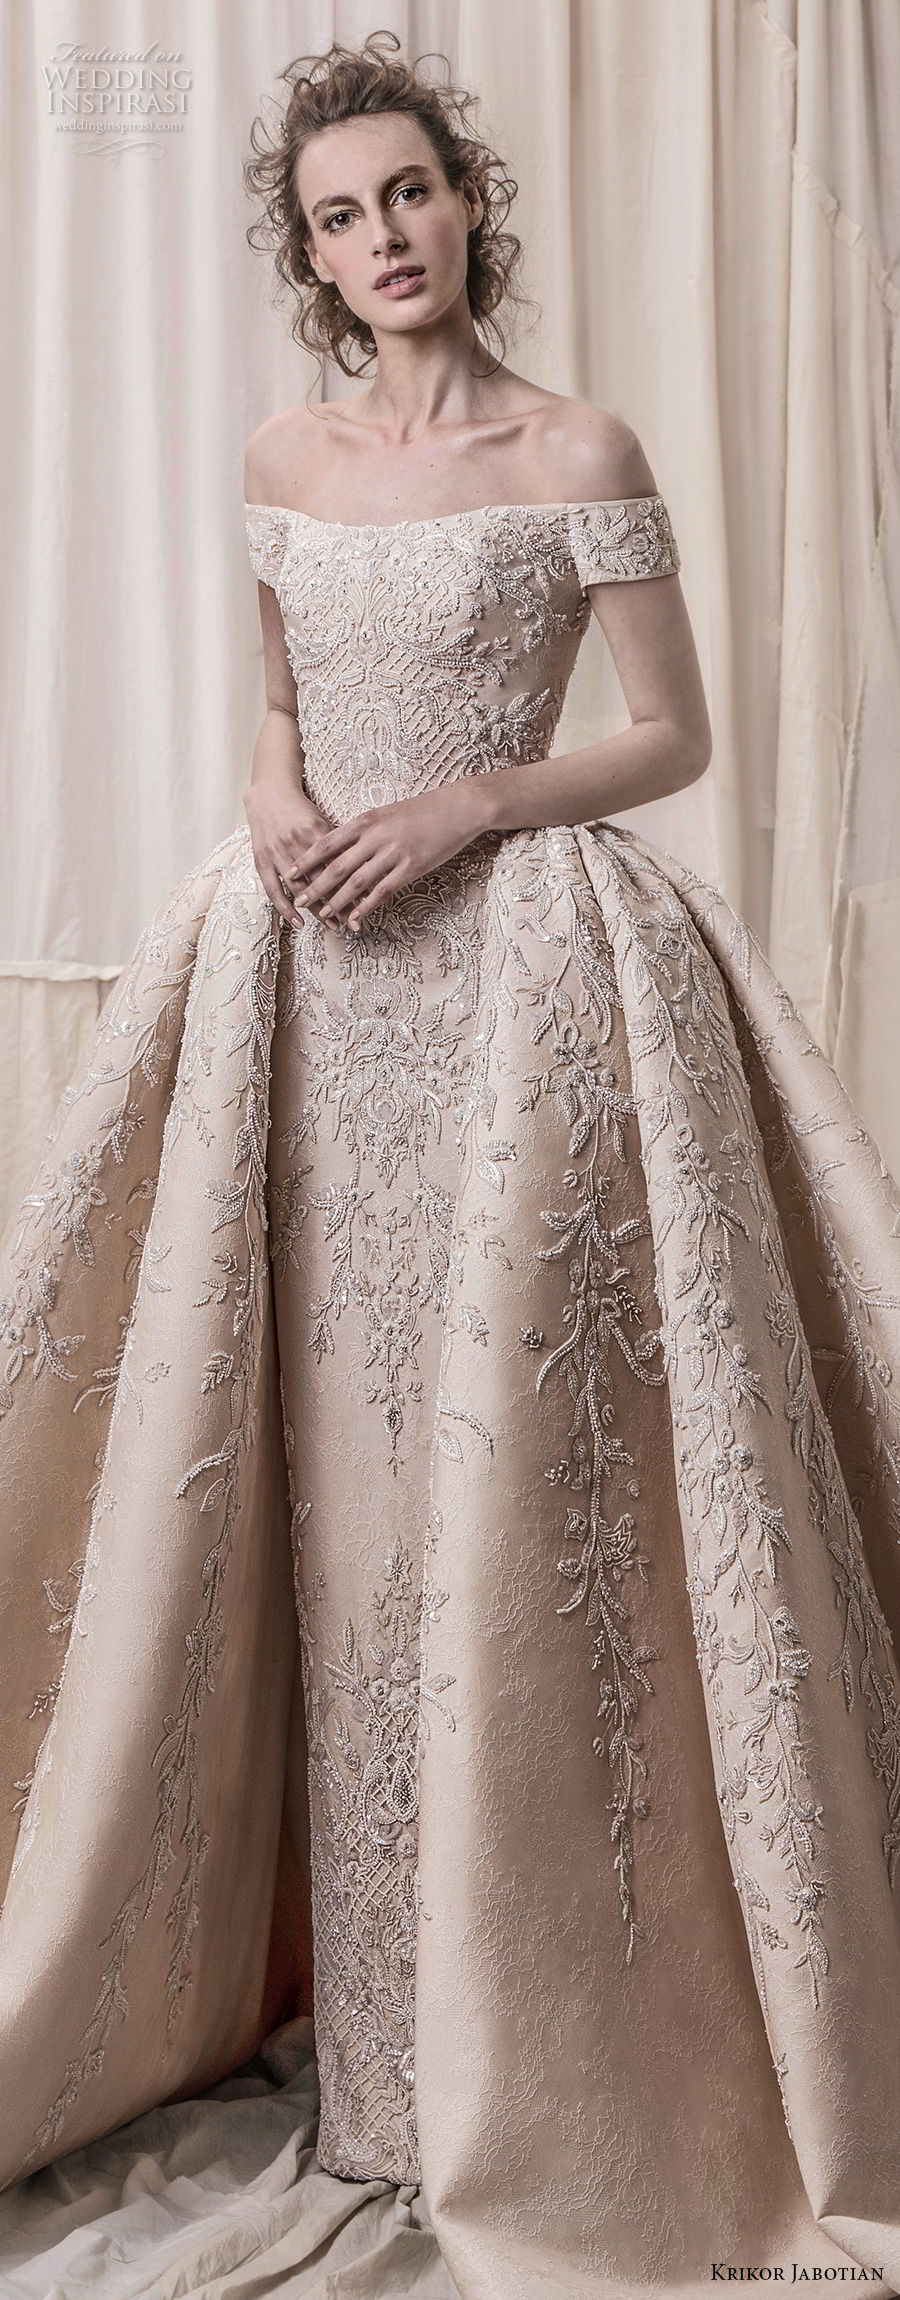 krikor jabotian spring 2018 bridal off the shoulder straight across neck full embellishment champagne gold princess ball gown a line wedding dress royal train (06) lv